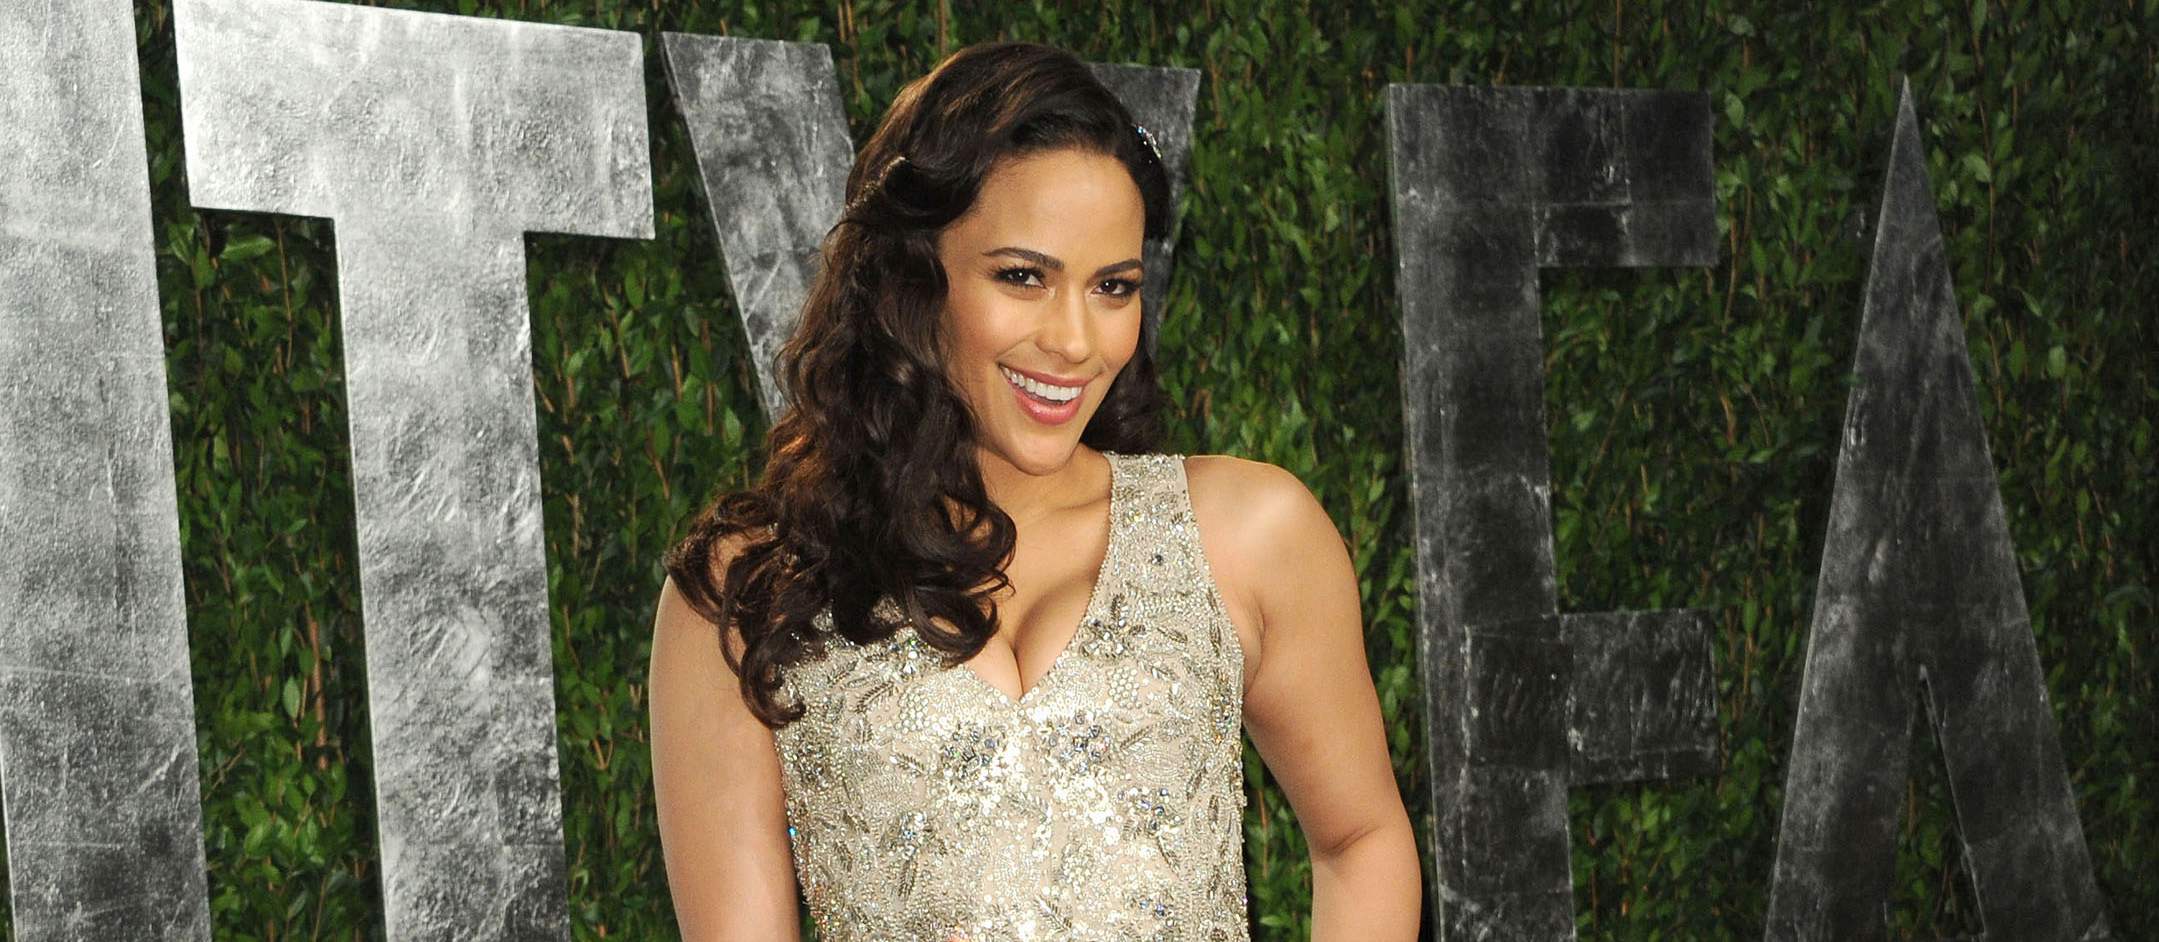 0227-paula-patton-vf